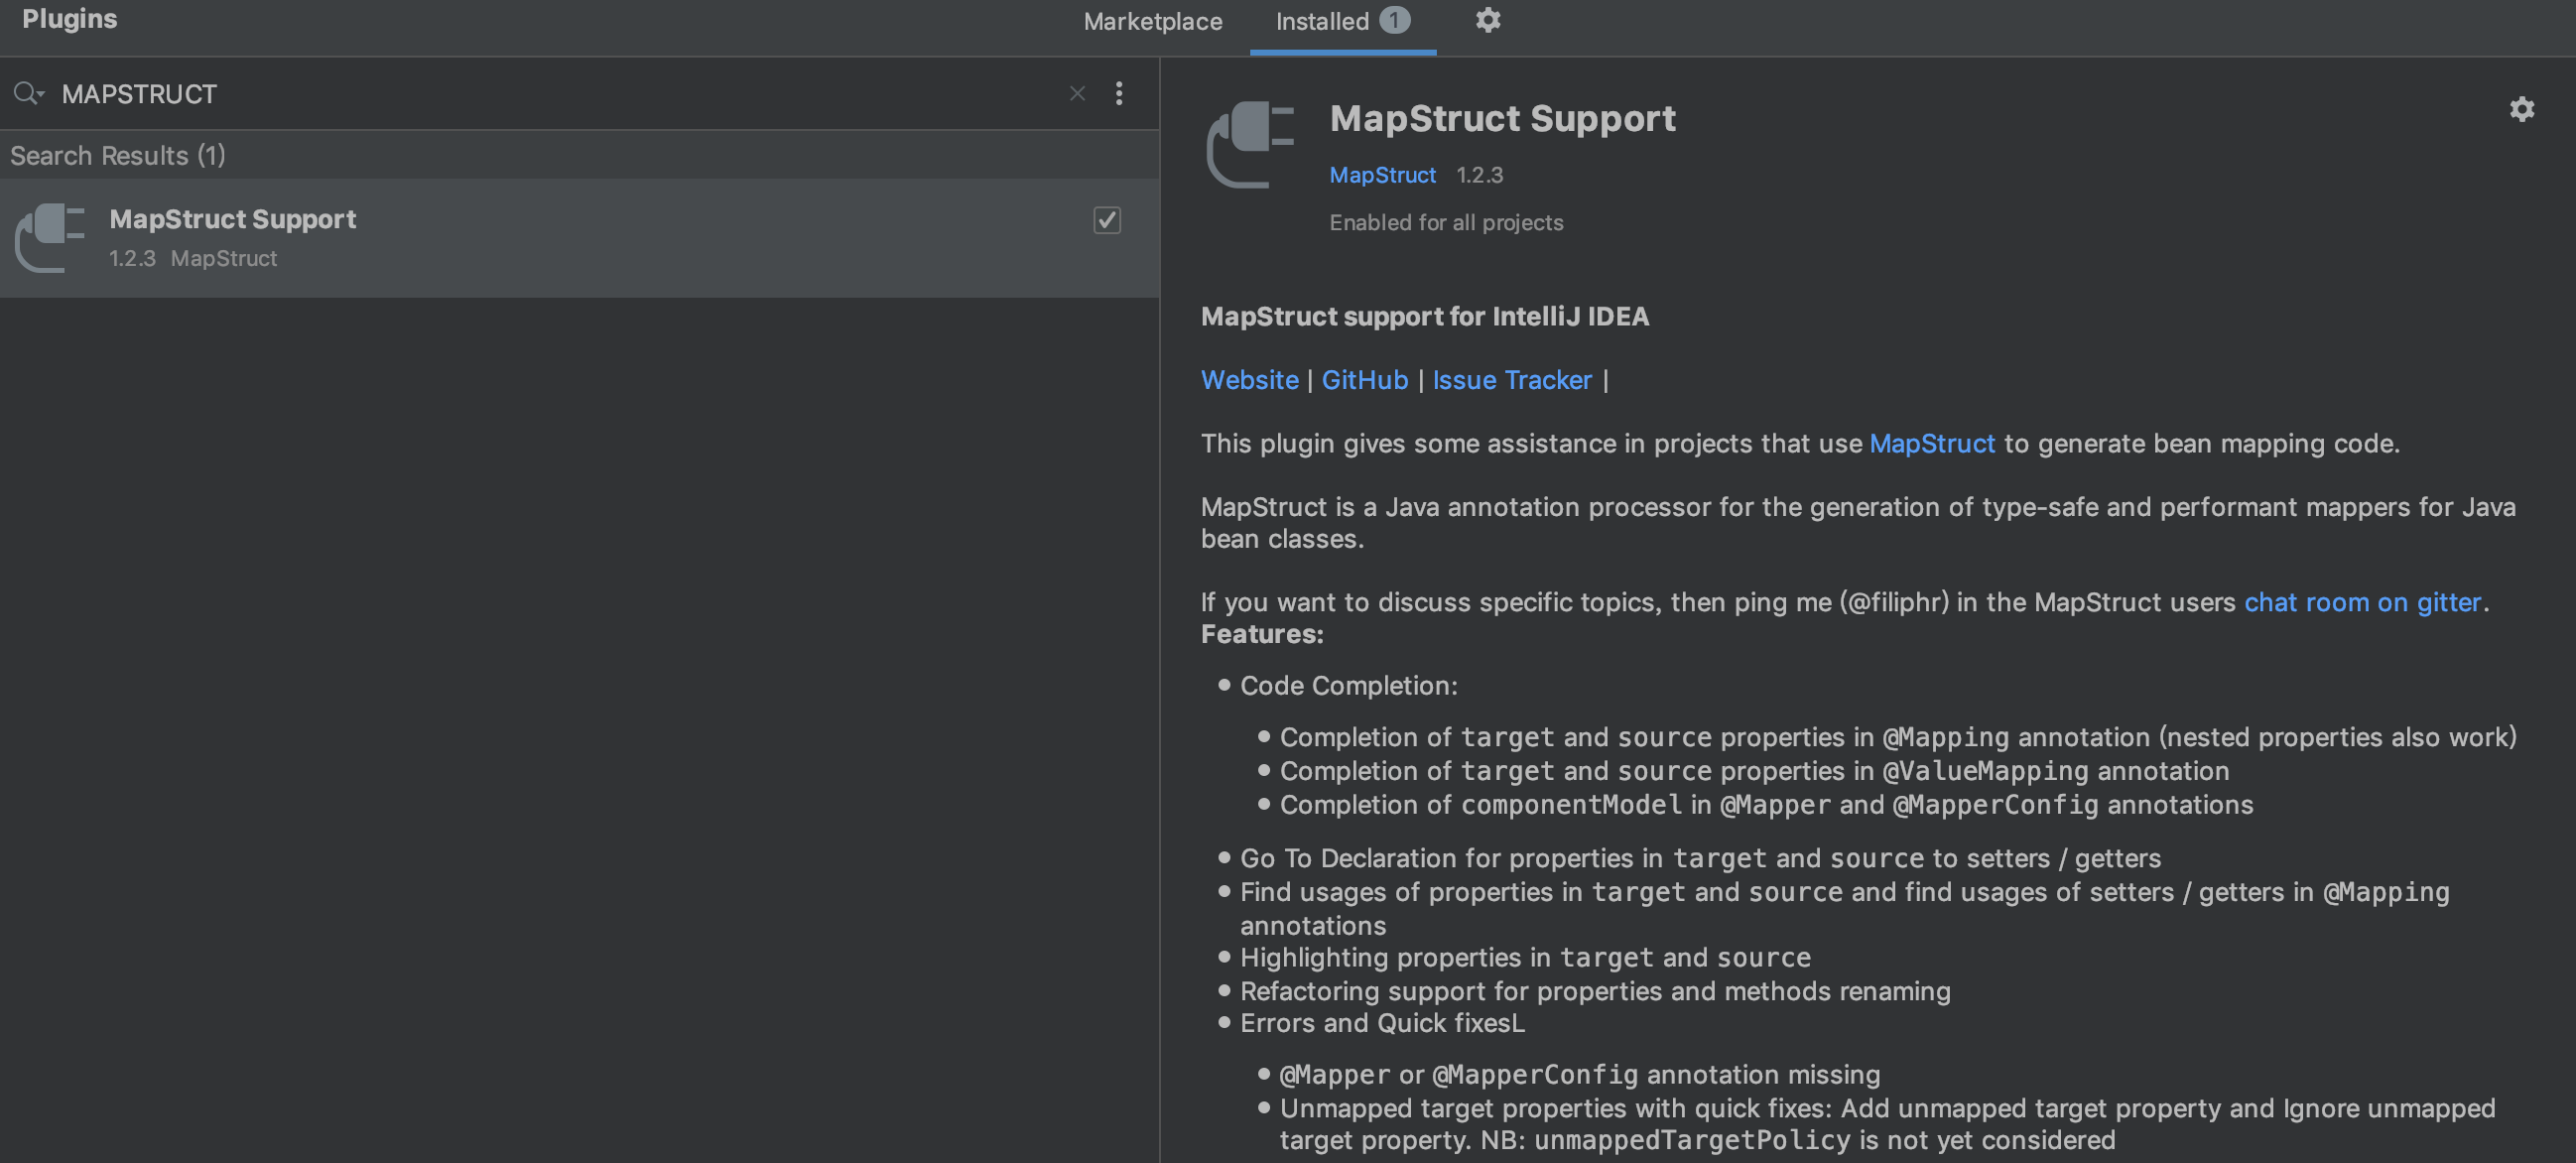 MapStruct Support